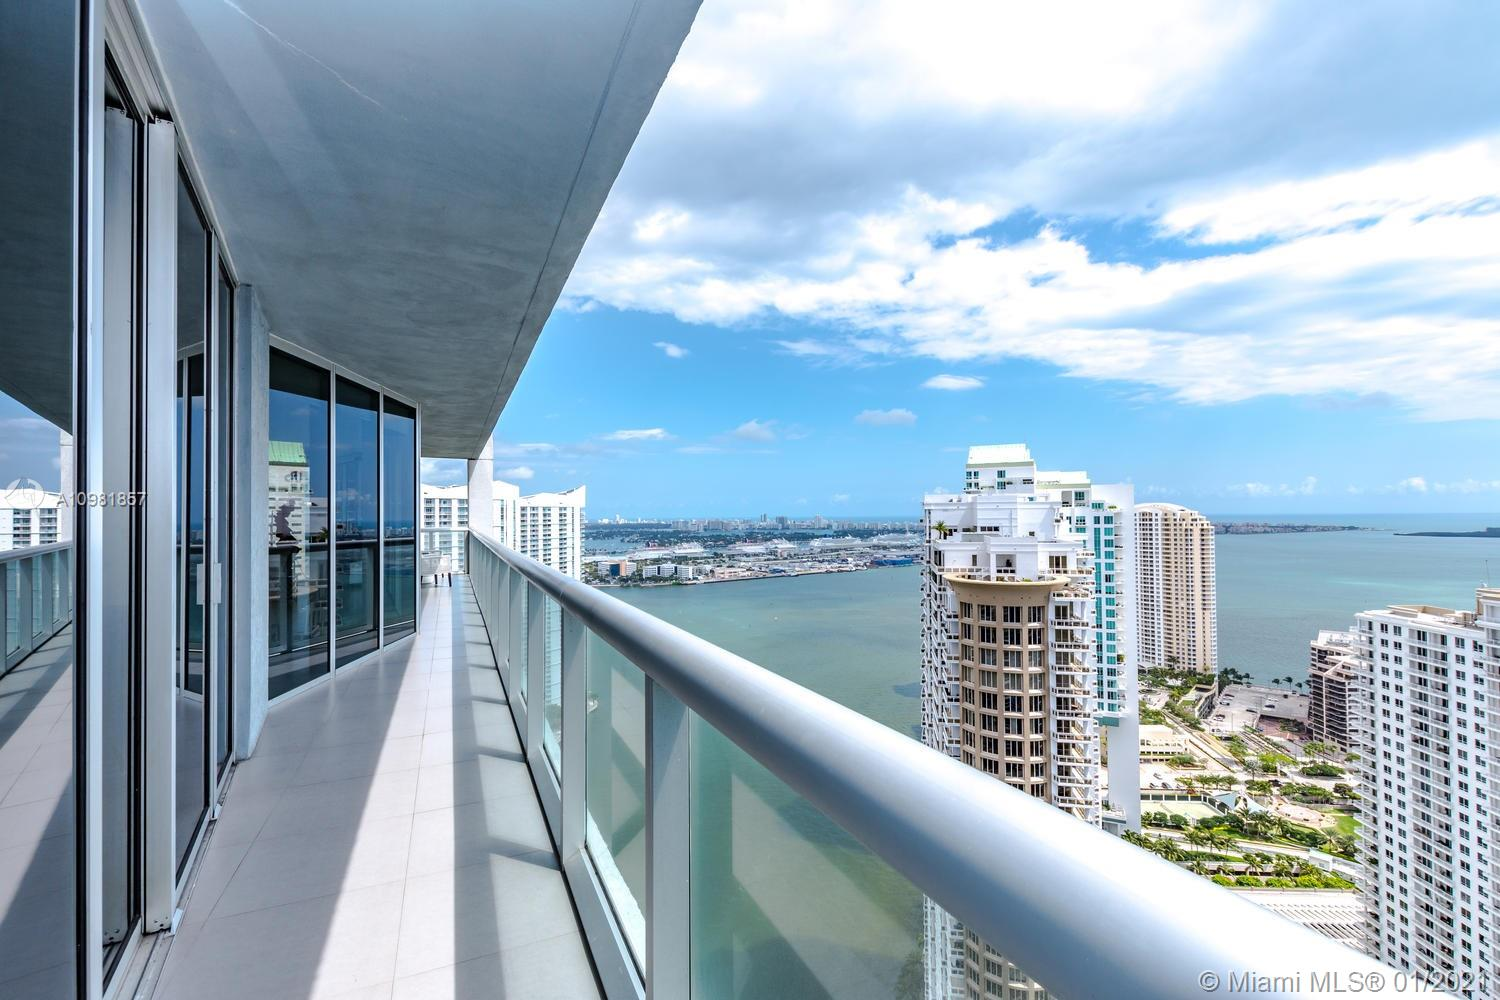 The largest and most thought after line in Icon Brickell. 3 BD/2.5BA corner unit with gorgeous water views from all rooms. Hip and luxurious building by Philippe Stark with one of a kind commons area and amenities. High-end restaurants on premises (Cliprani and Catina LaViente.) Very walkable neighborhood 5 min walk to Brickell City Center. Unit is furnished but owner will exclude artwork and personal items.